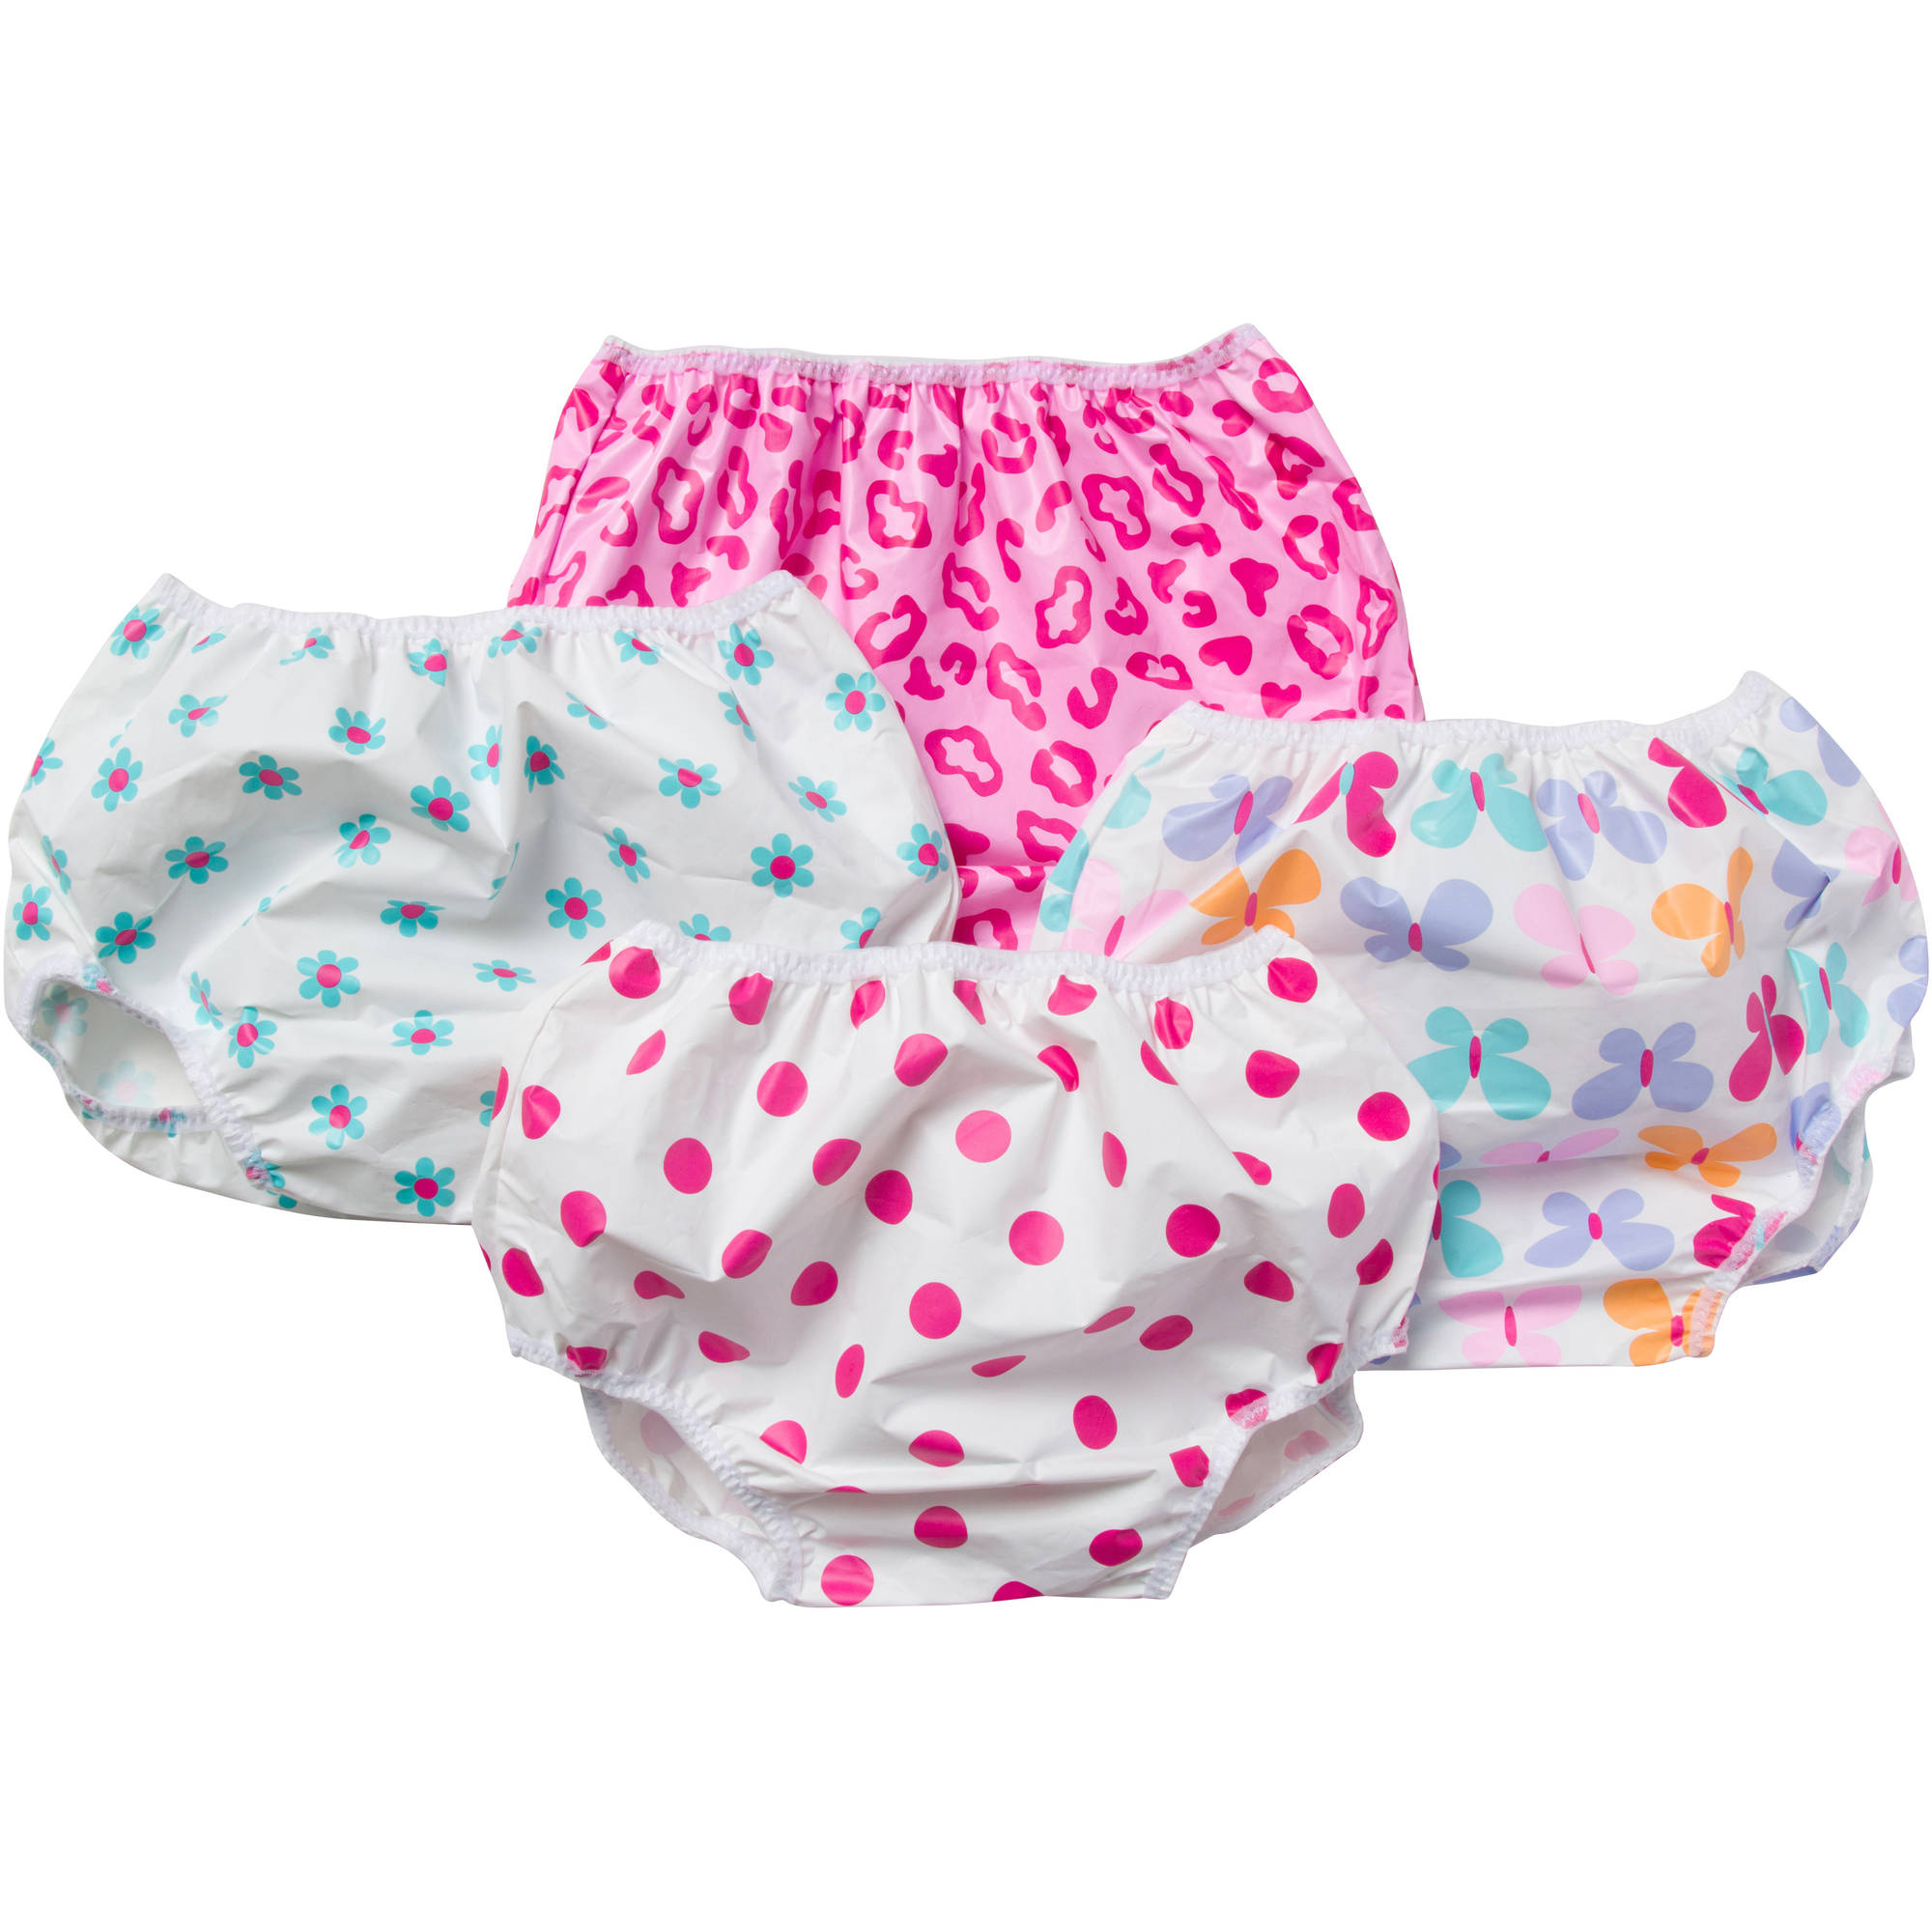 Gerber Baby Toddler Girl Pink Waterproof Pants, 4-Pack